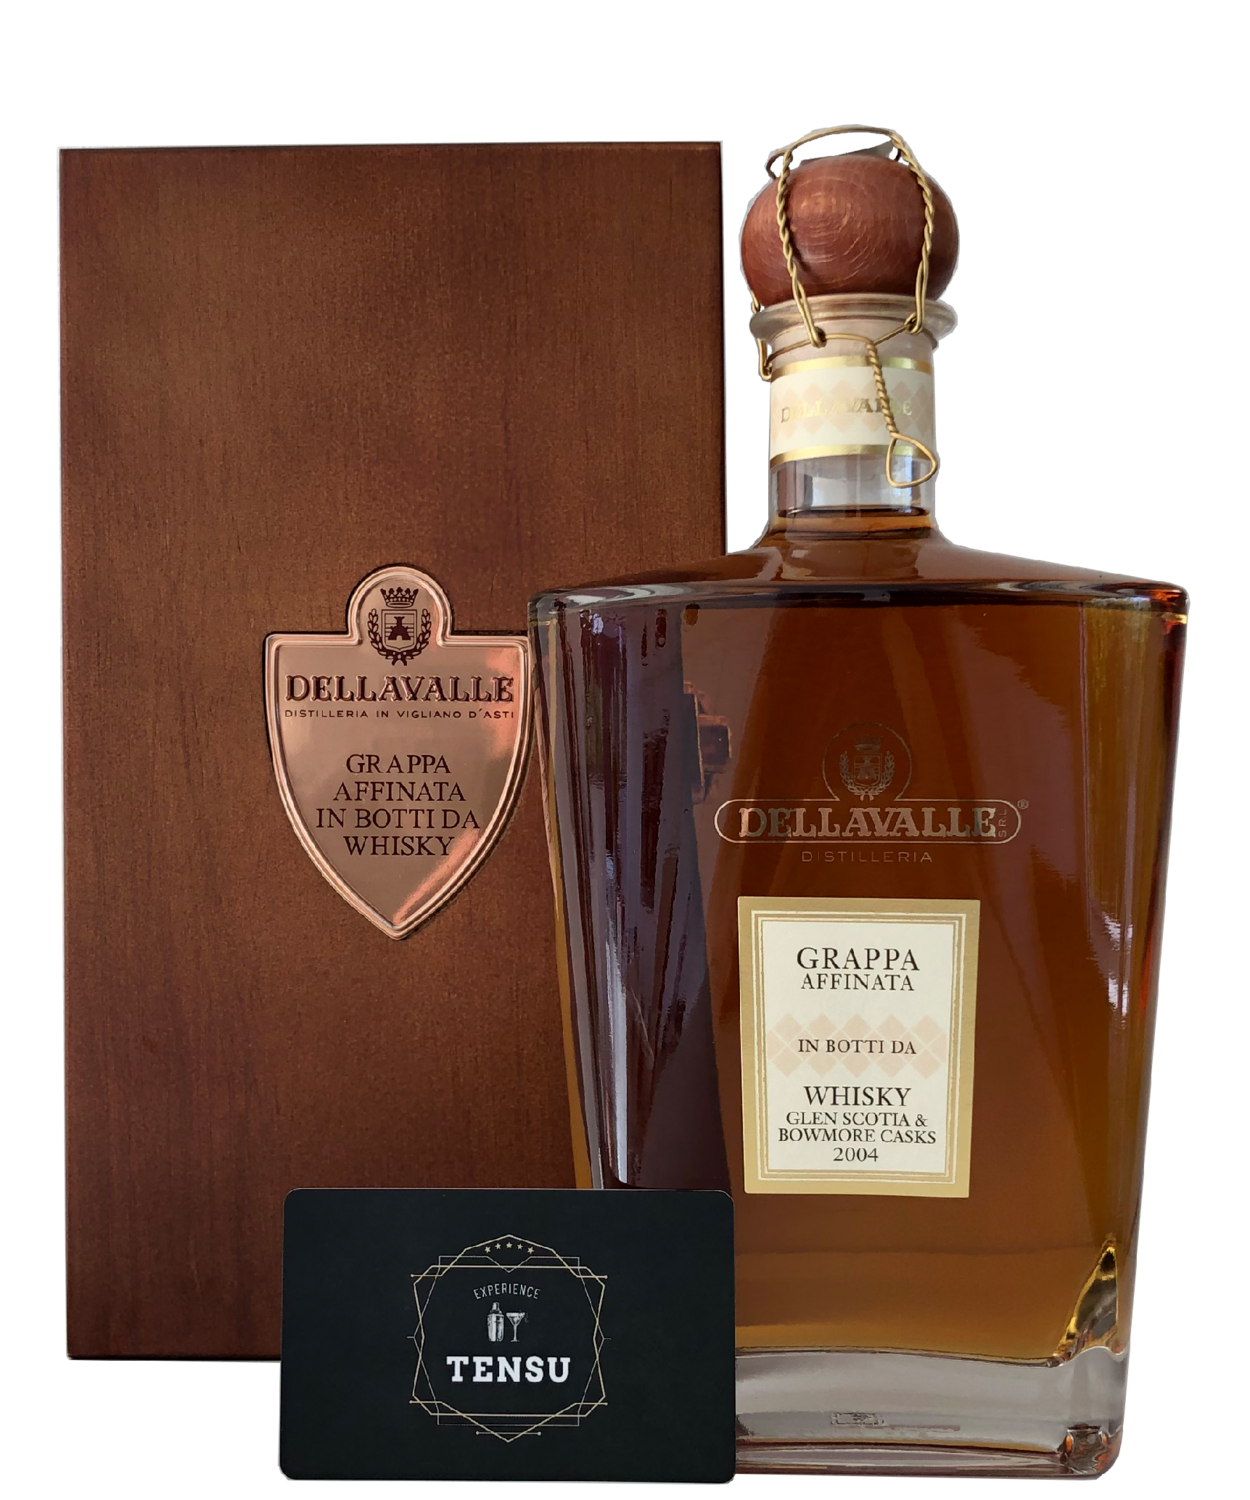 Dellavalle Grappa Affinata Whisky (Glen Scotia & Bowmore Casks)